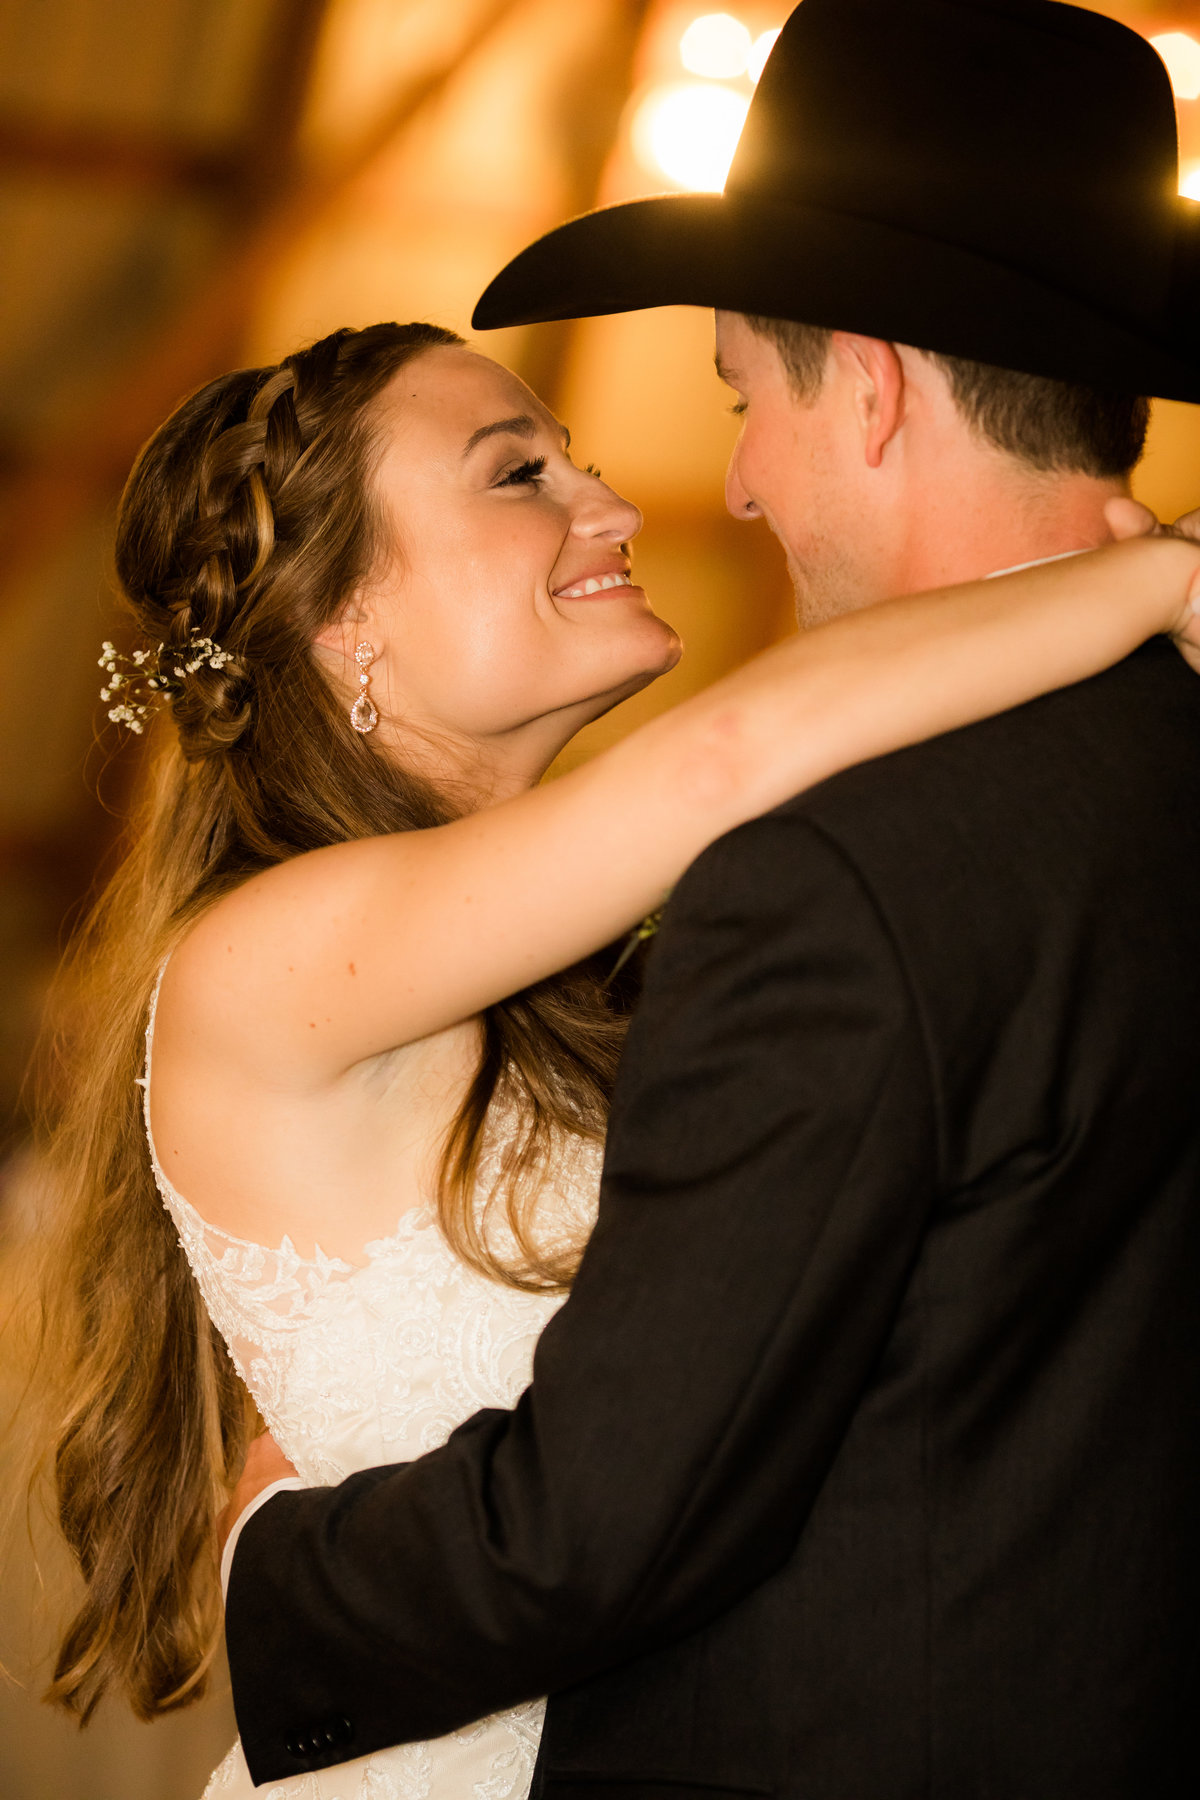 Nsshville Bride - Nashville Brides - The Hayloft Weddings - Tennessee Brides - Kentucky Brides - Southern Brides - Cowboys Wife - Cowboys Bride - Ranch Weddings - Cowboys and Belles160